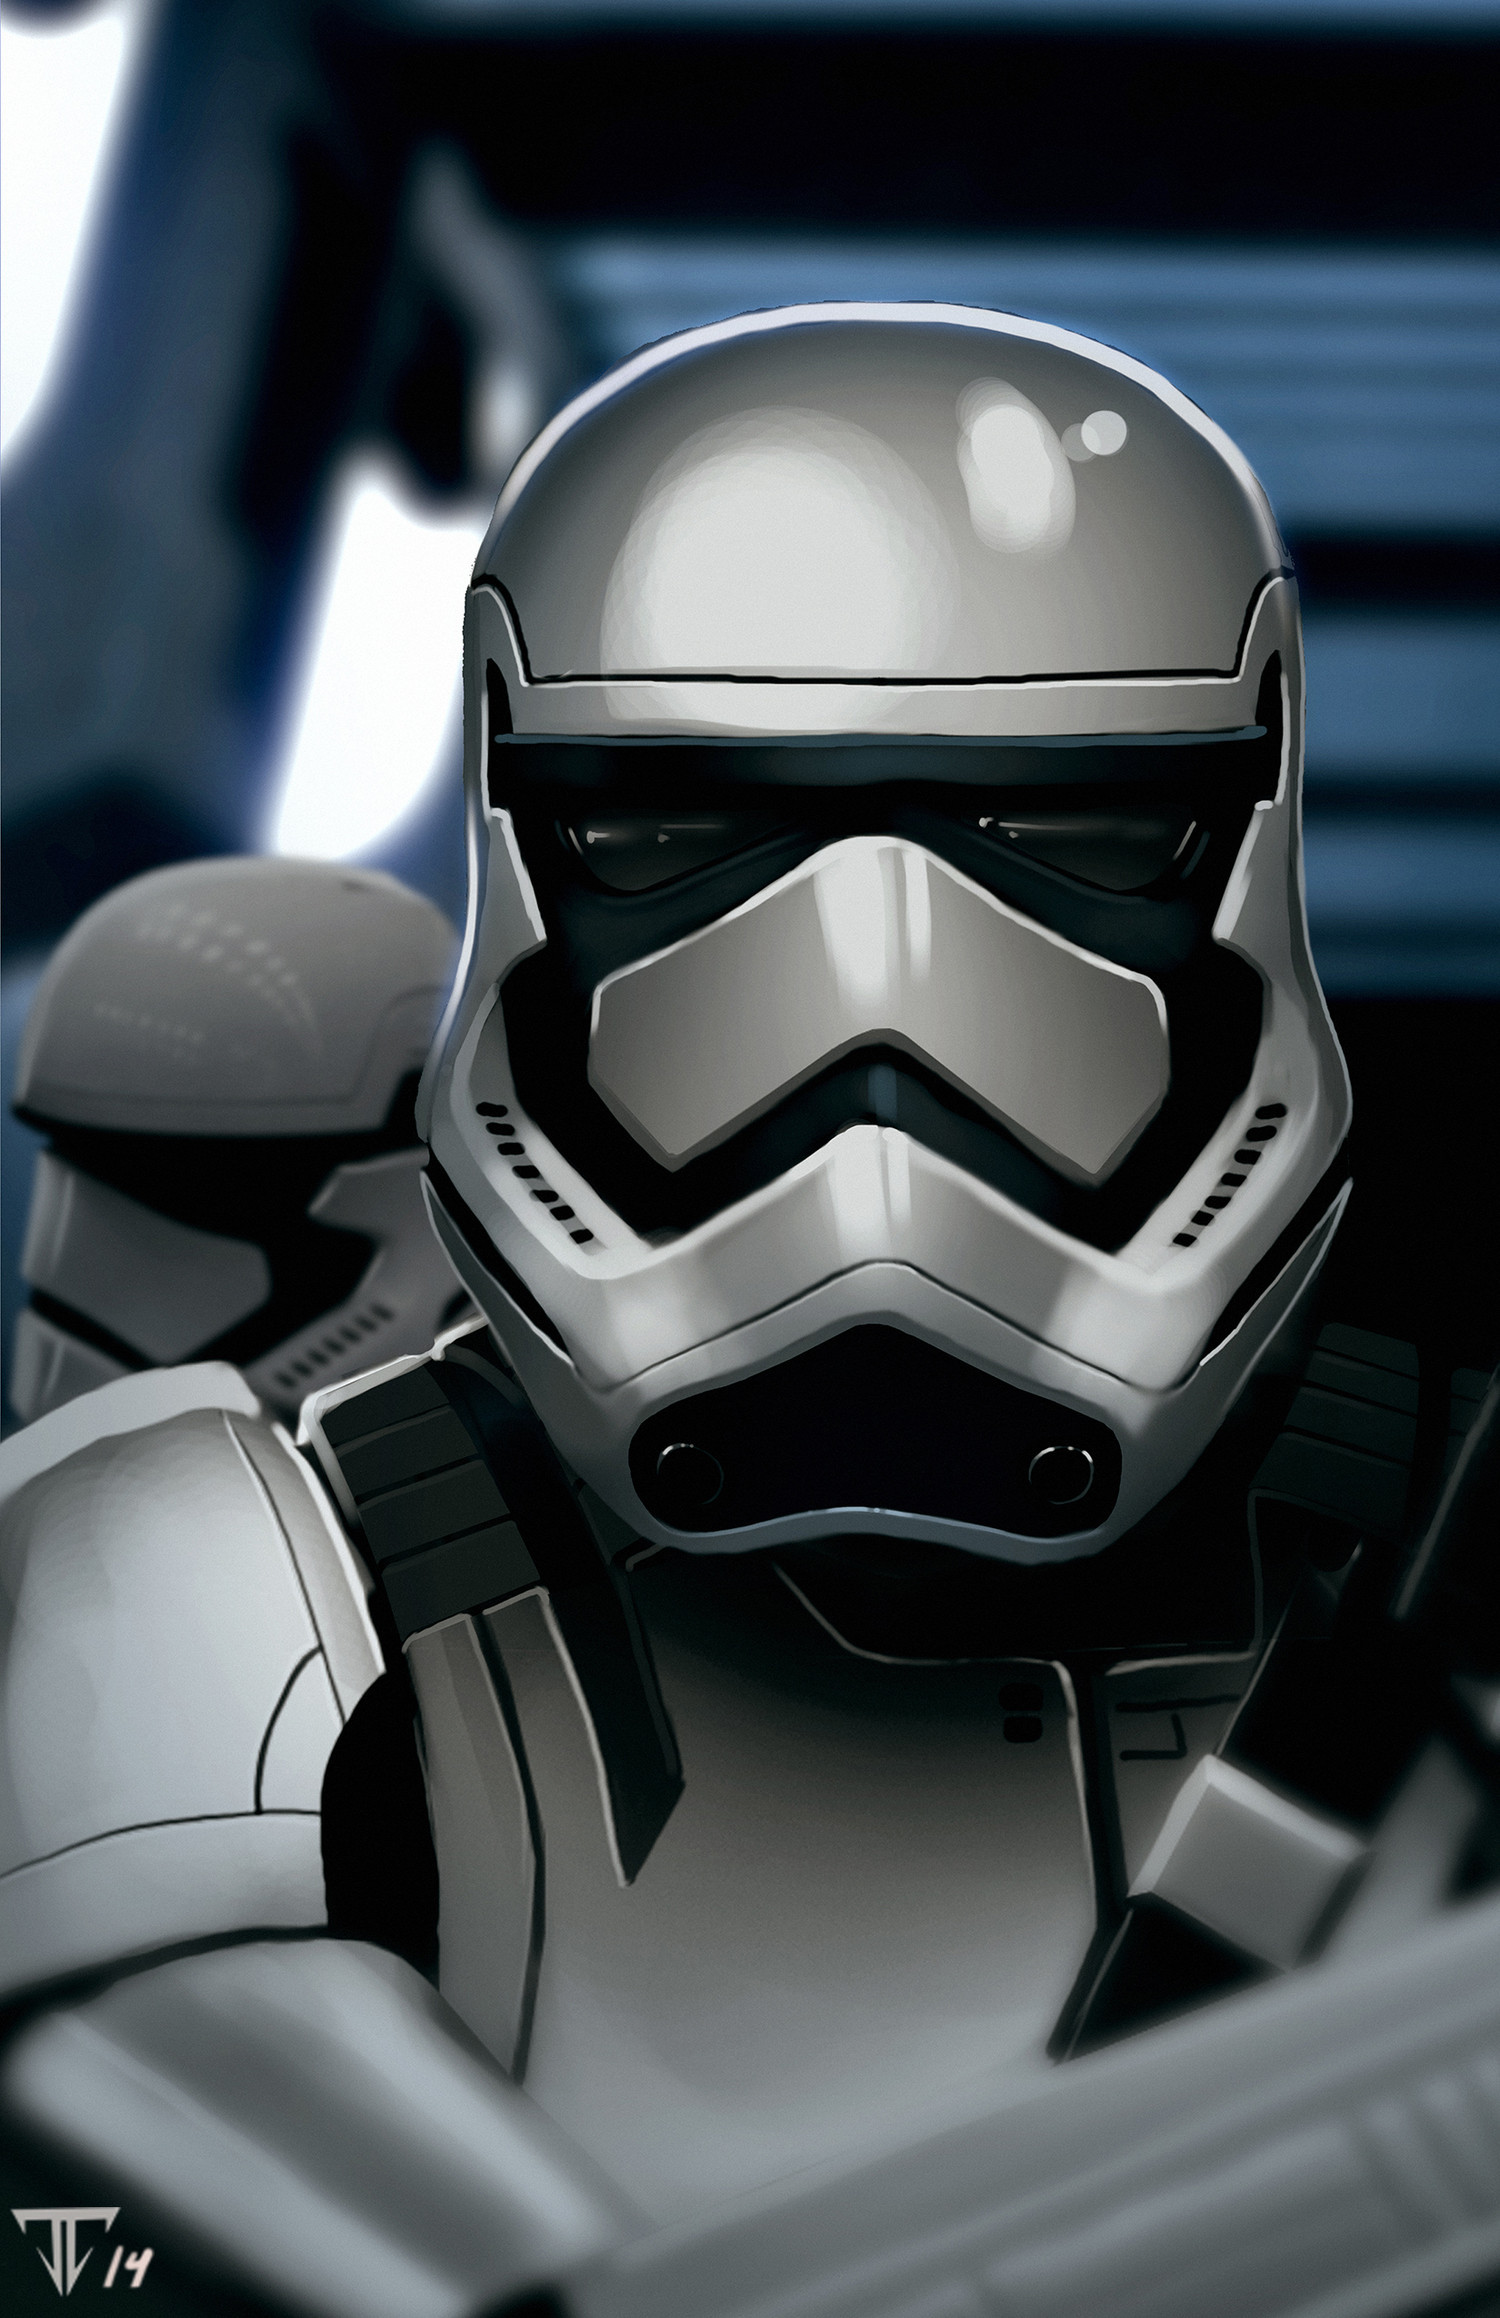 Turn the new Star Wars VII Stormtrooper Concept images into a wallpaper …